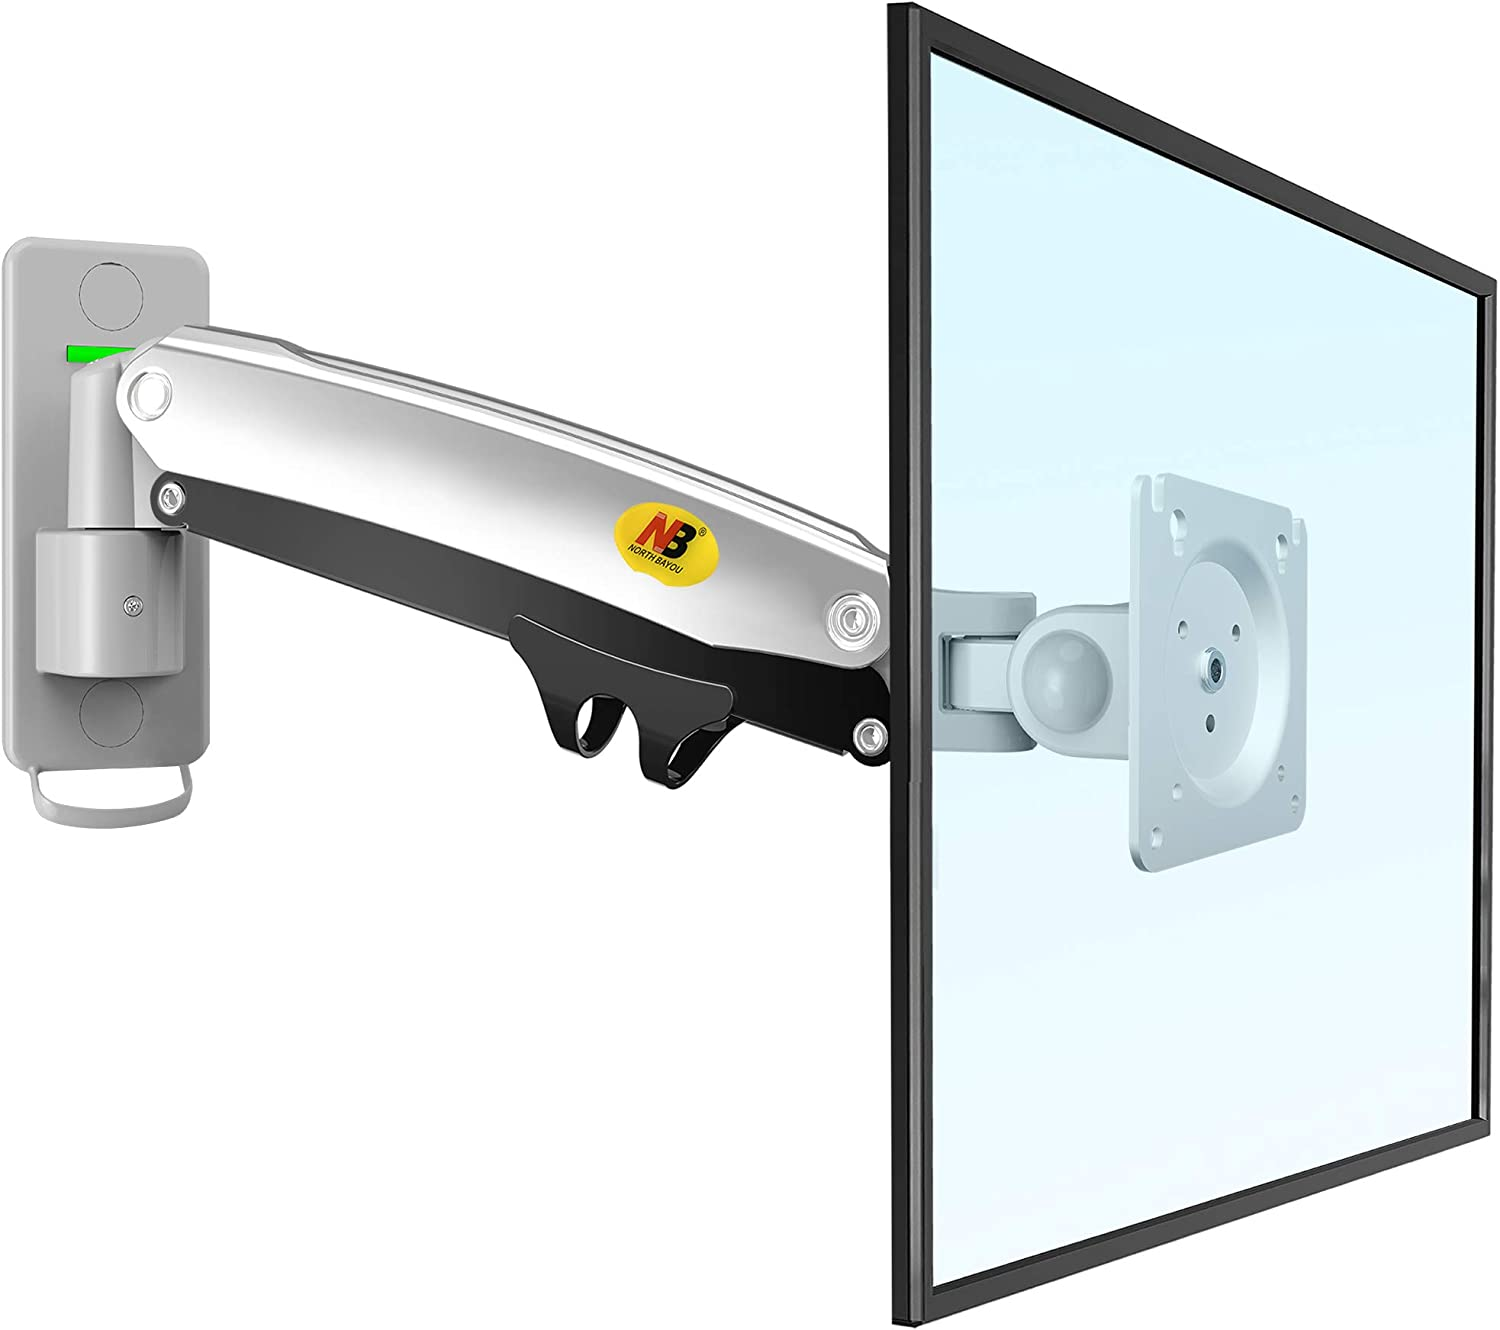 "NB North Bayou Monitor Wall Mount Bracket LED LCD Computer Monitor Mount Gas Strut Arm Fits 24""- 35"" Computer Monitors Within 6.6lbs to 26.5 lbs F425-S"